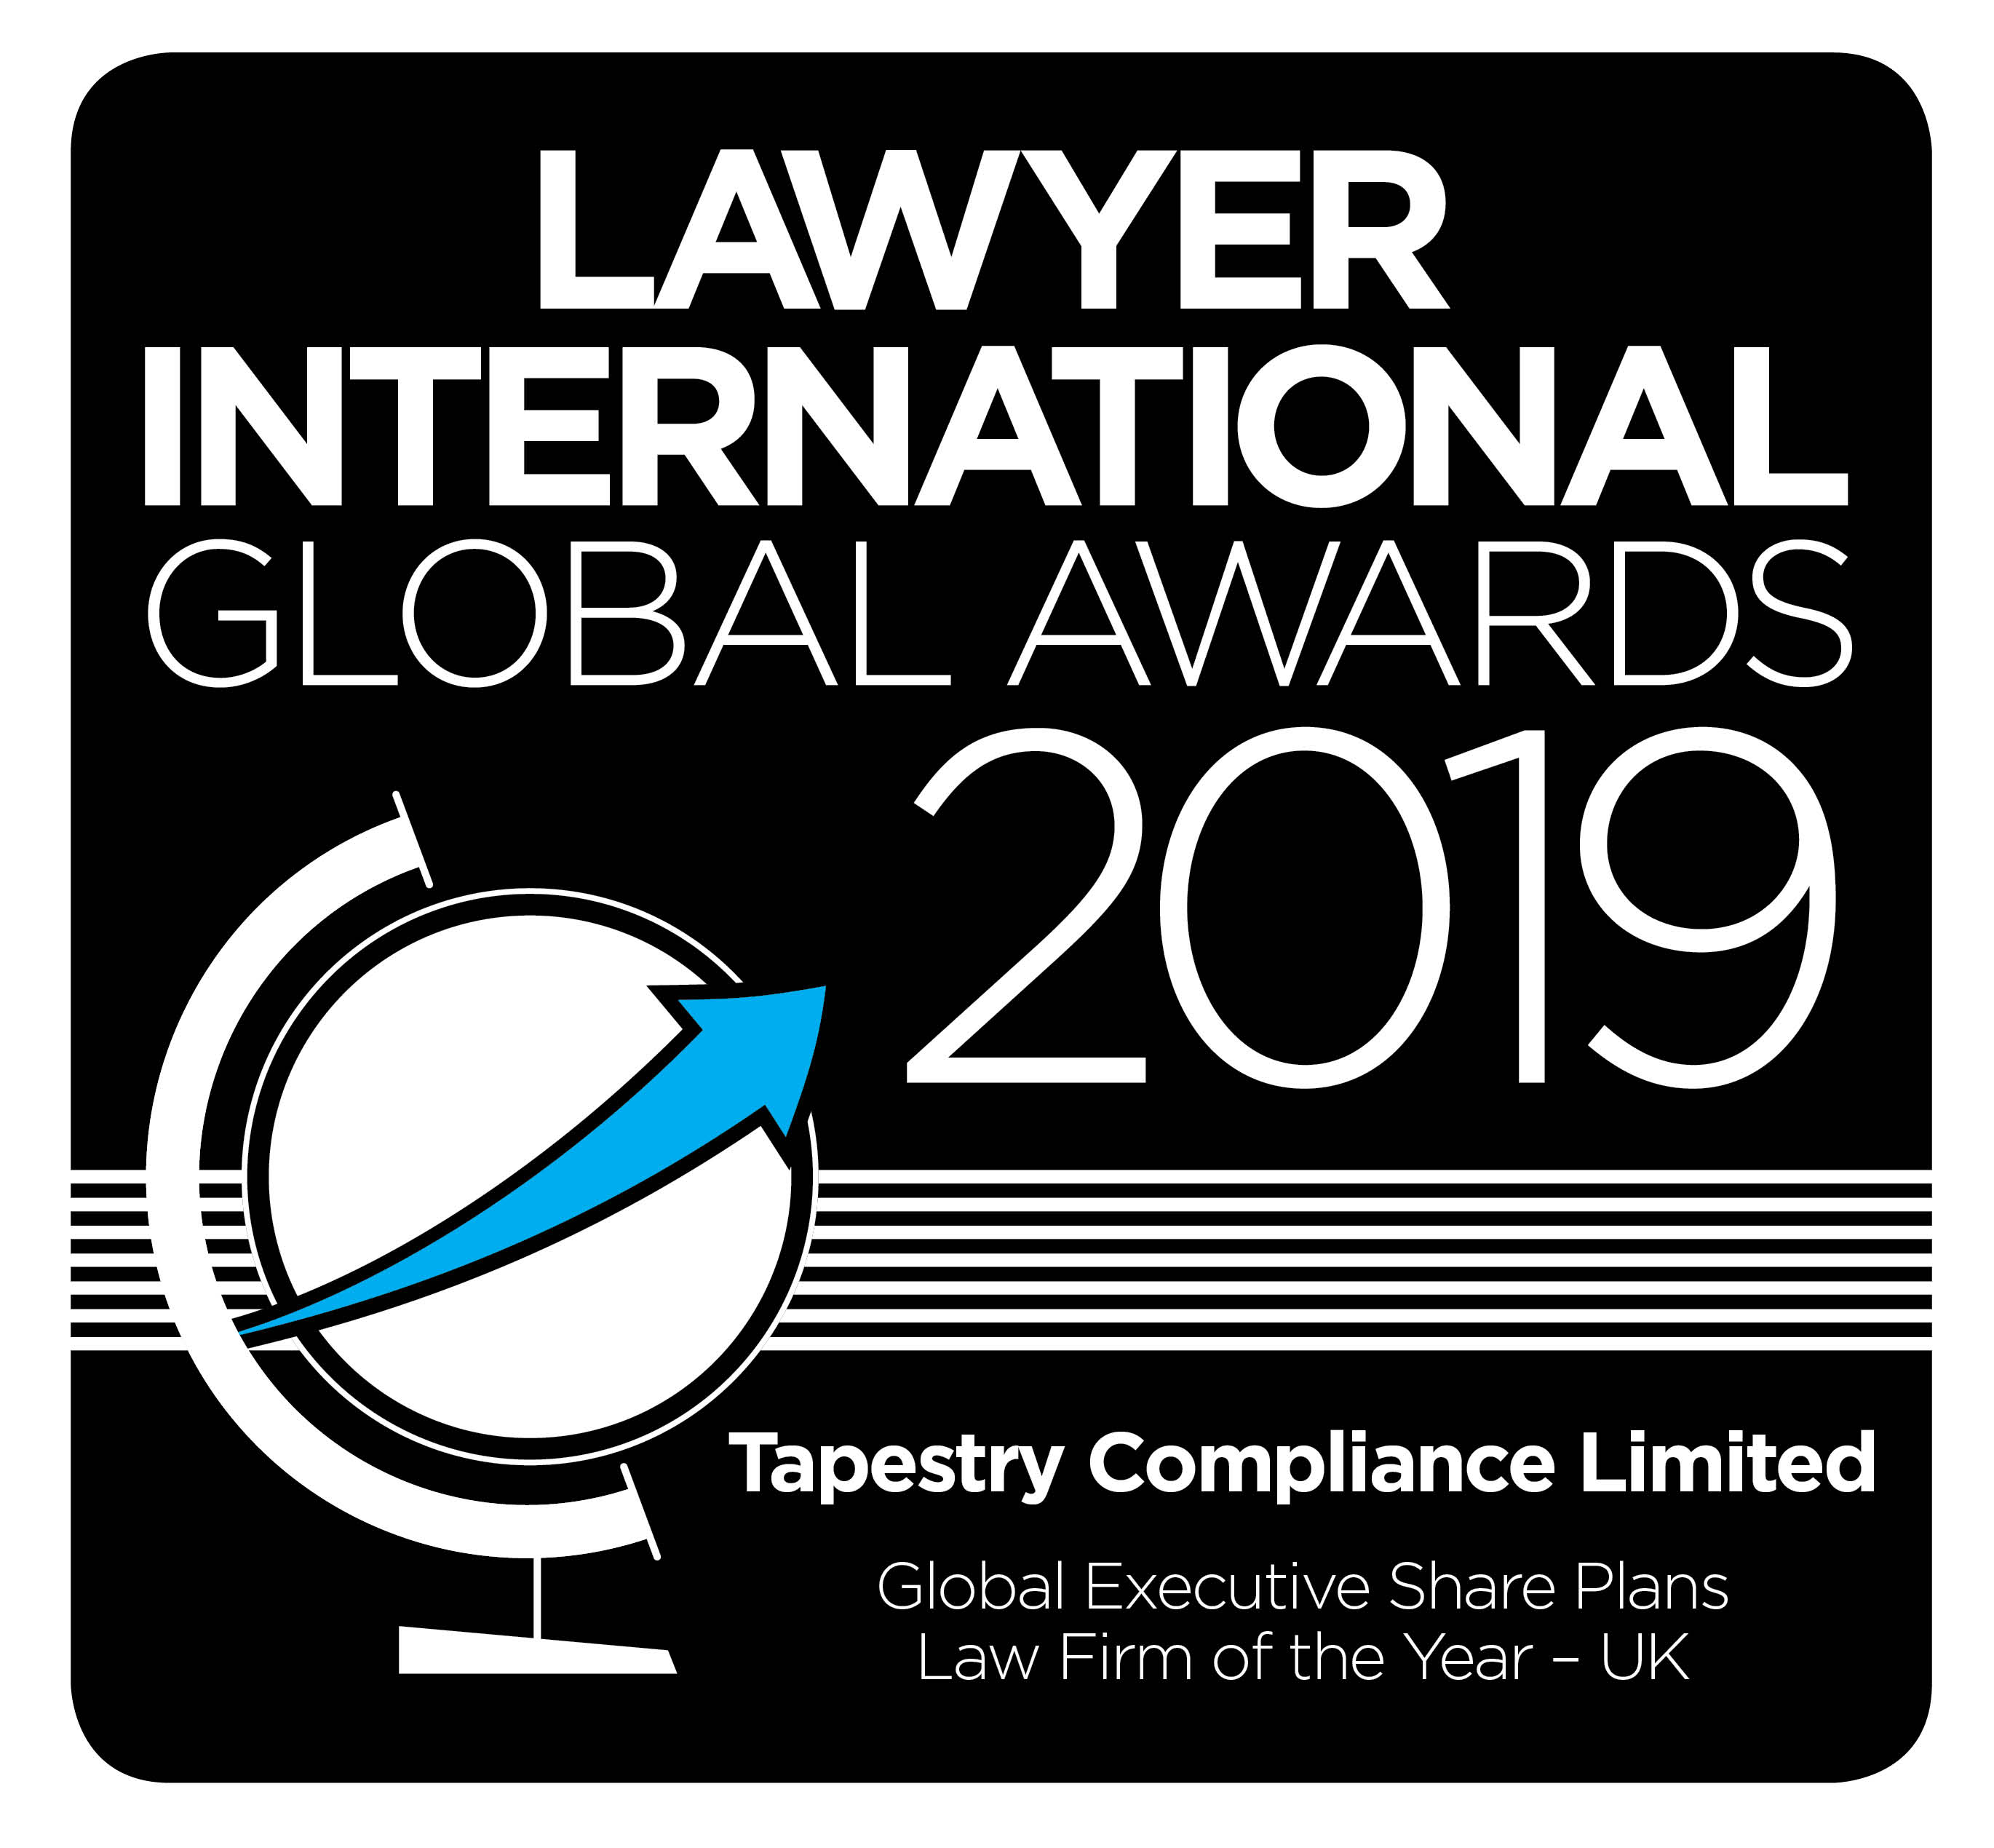 The Lawyer international - Global awards 2019 logo_Tapestry Compliance Limited